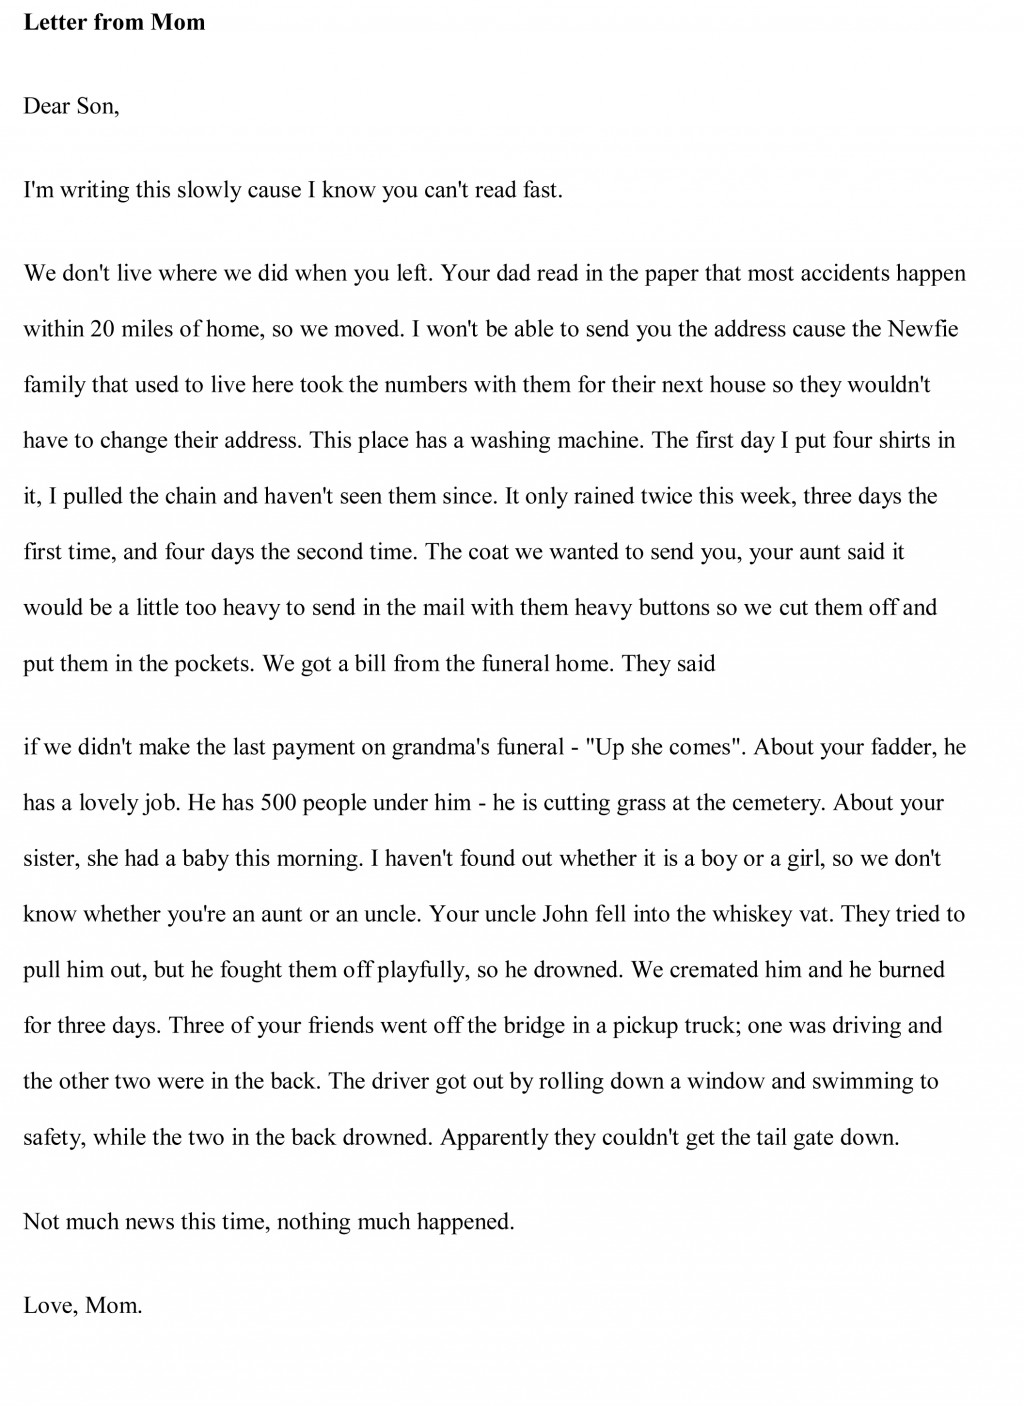 003 Essay Example Funny Essays Free Stupendous Examples Composition Topics On School Life Large